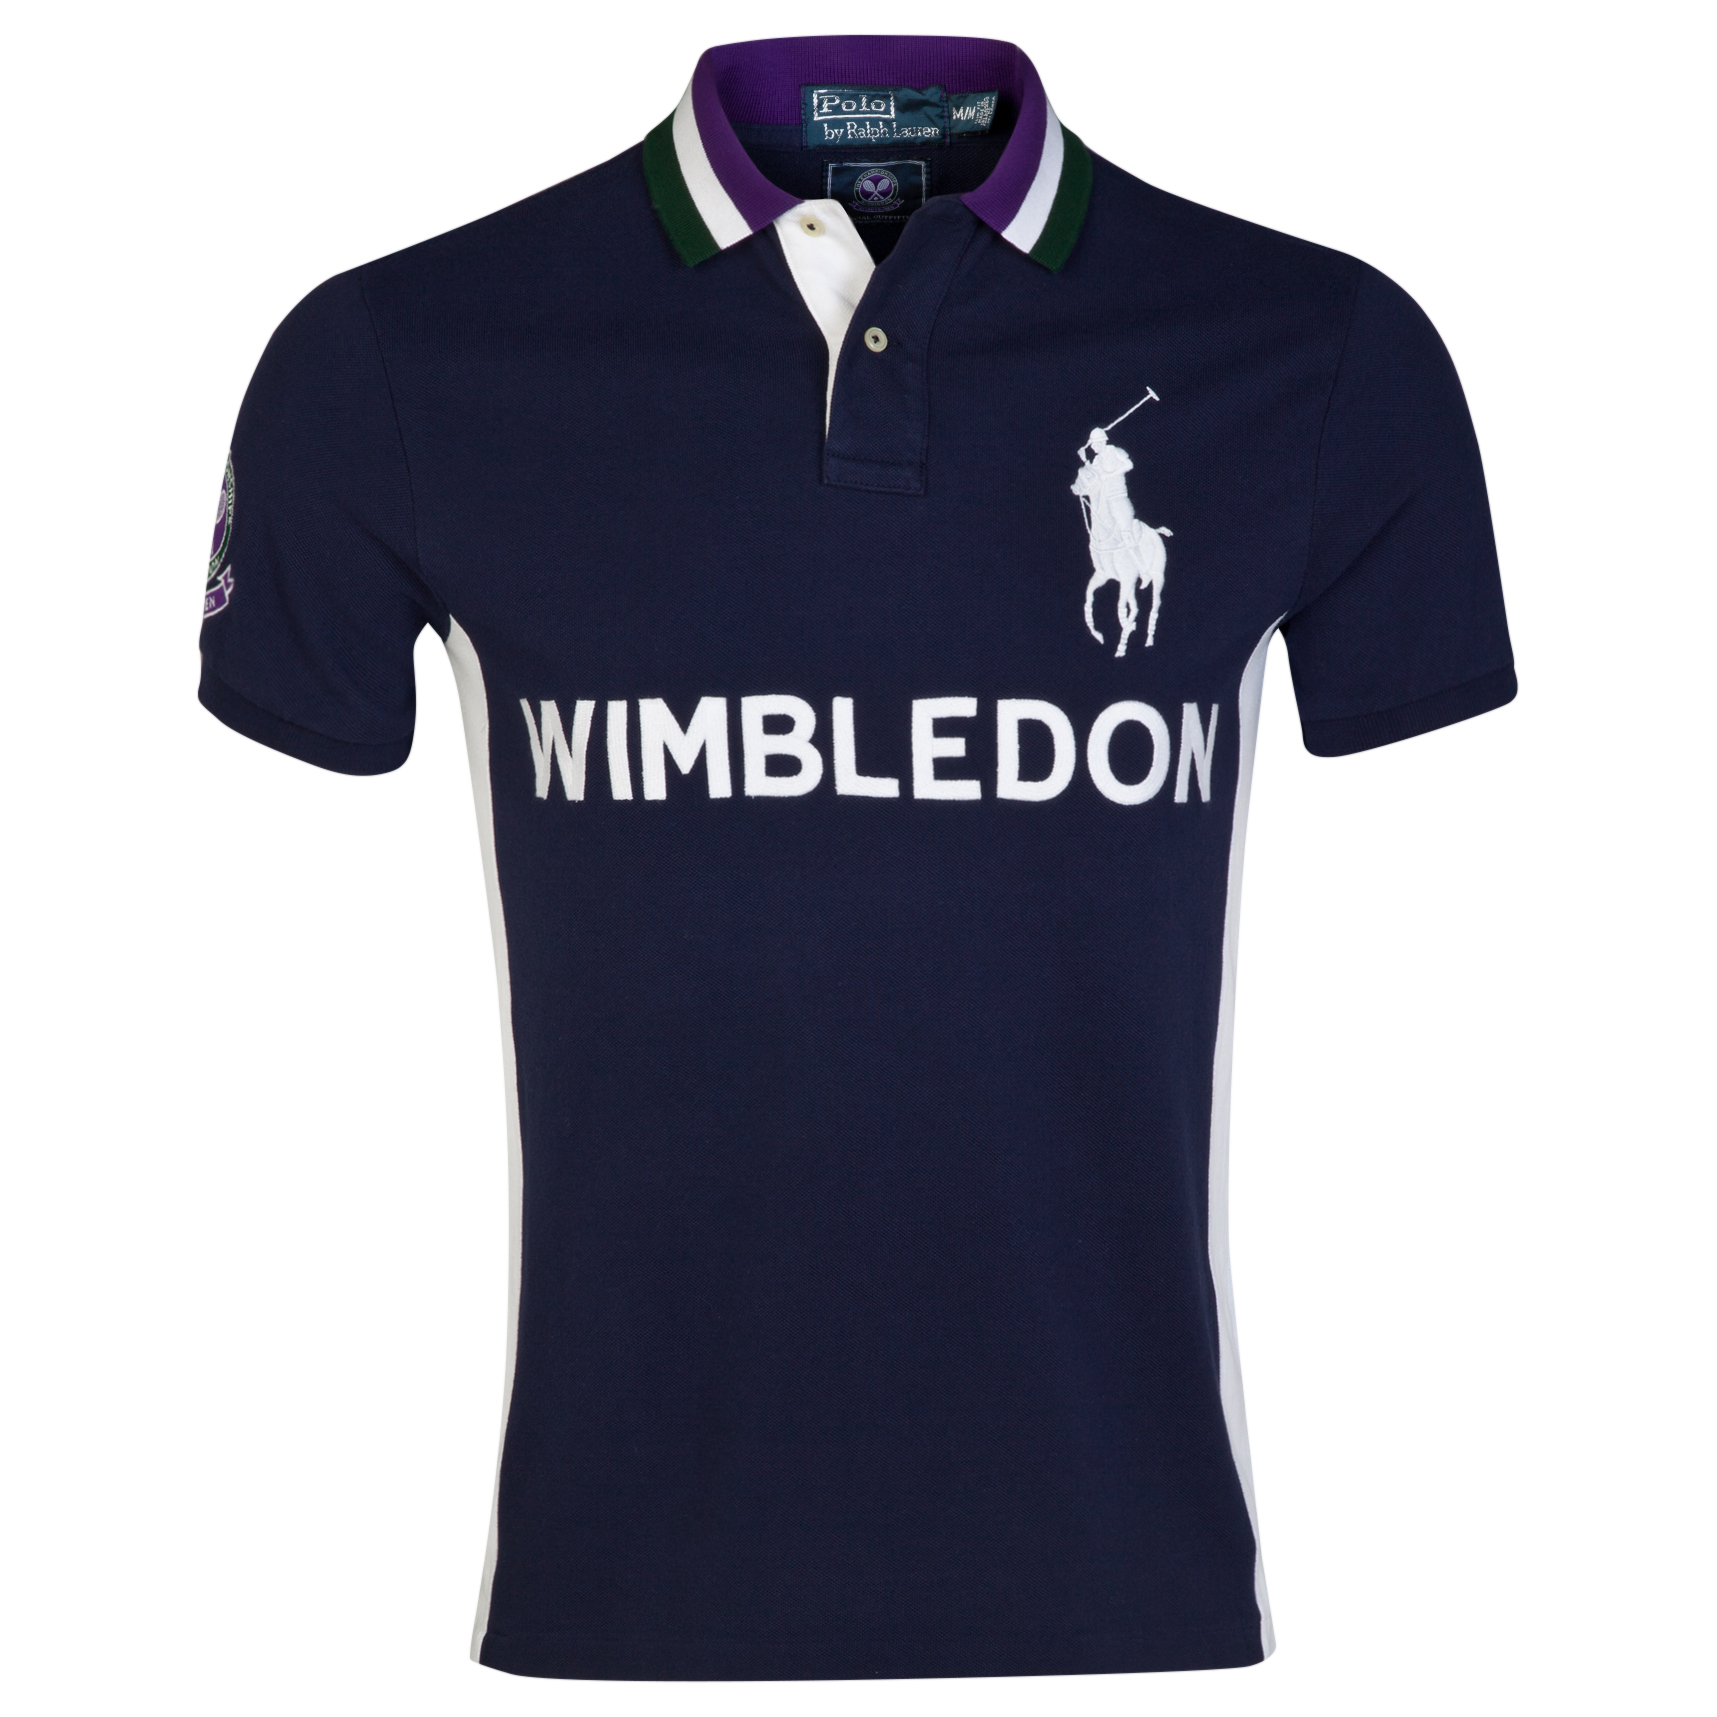 Wimbledon Polo Ralph Lauren Slim Fit Stripe Collar Polo - French Navy